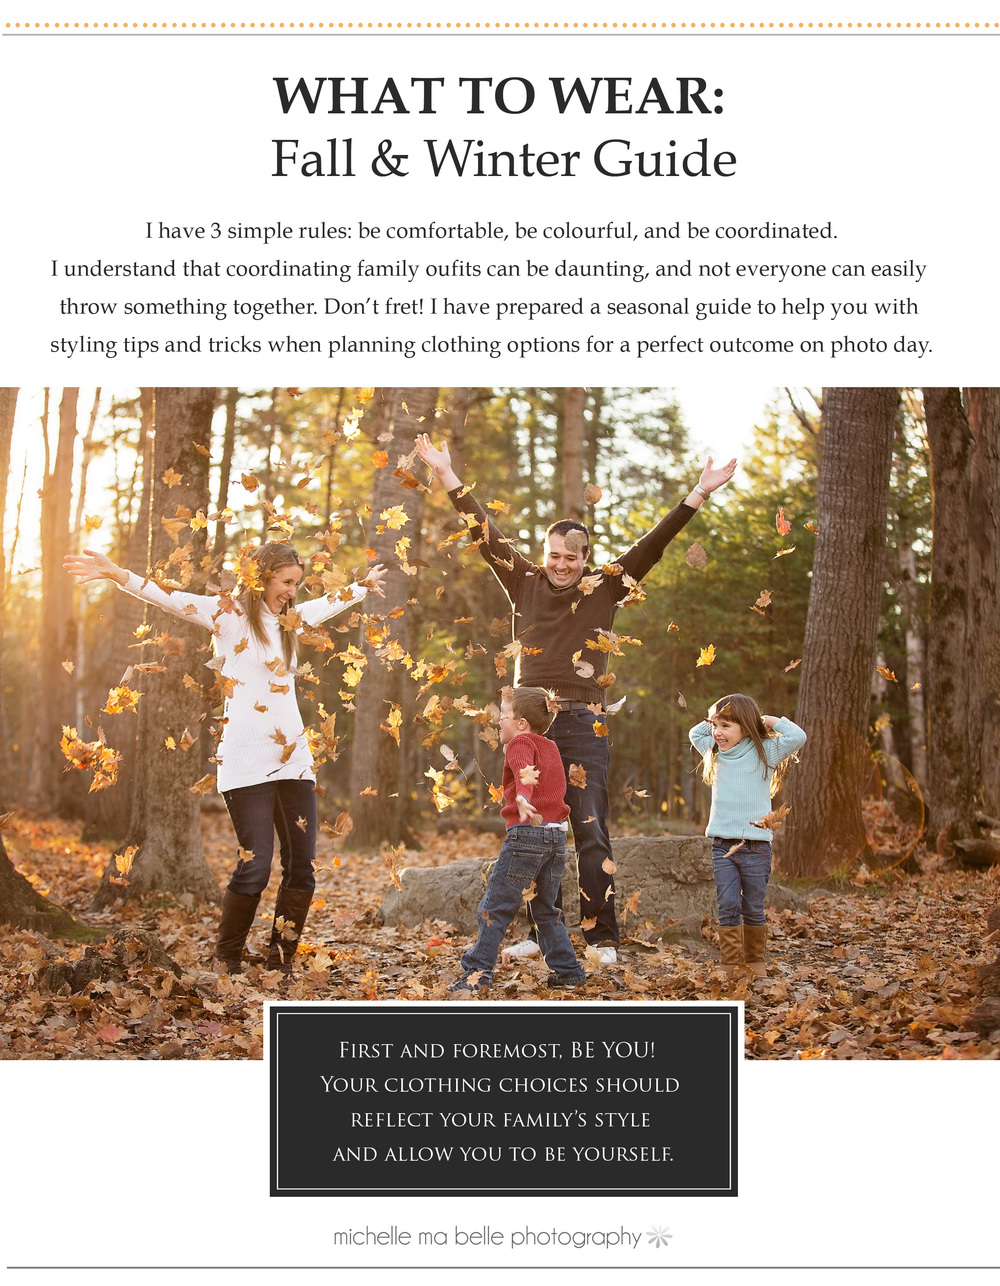 Click on image to browse the Fall & Winter Style Guide.